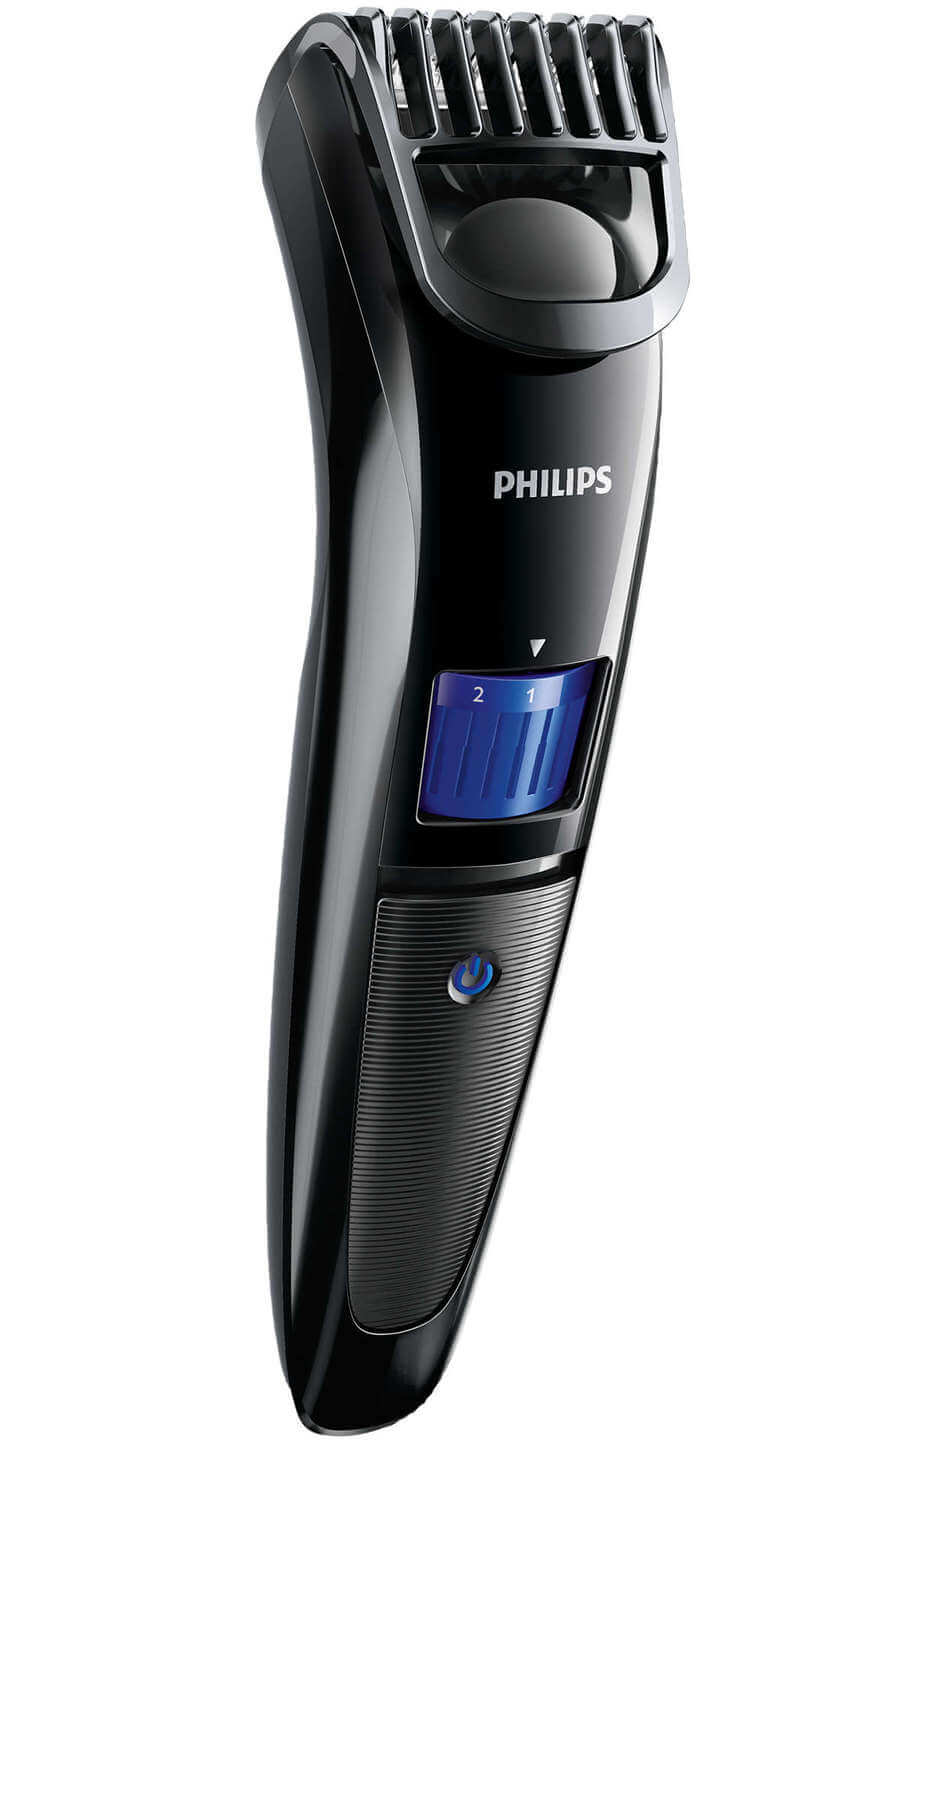 best philips trimmer in india for men model qt4001